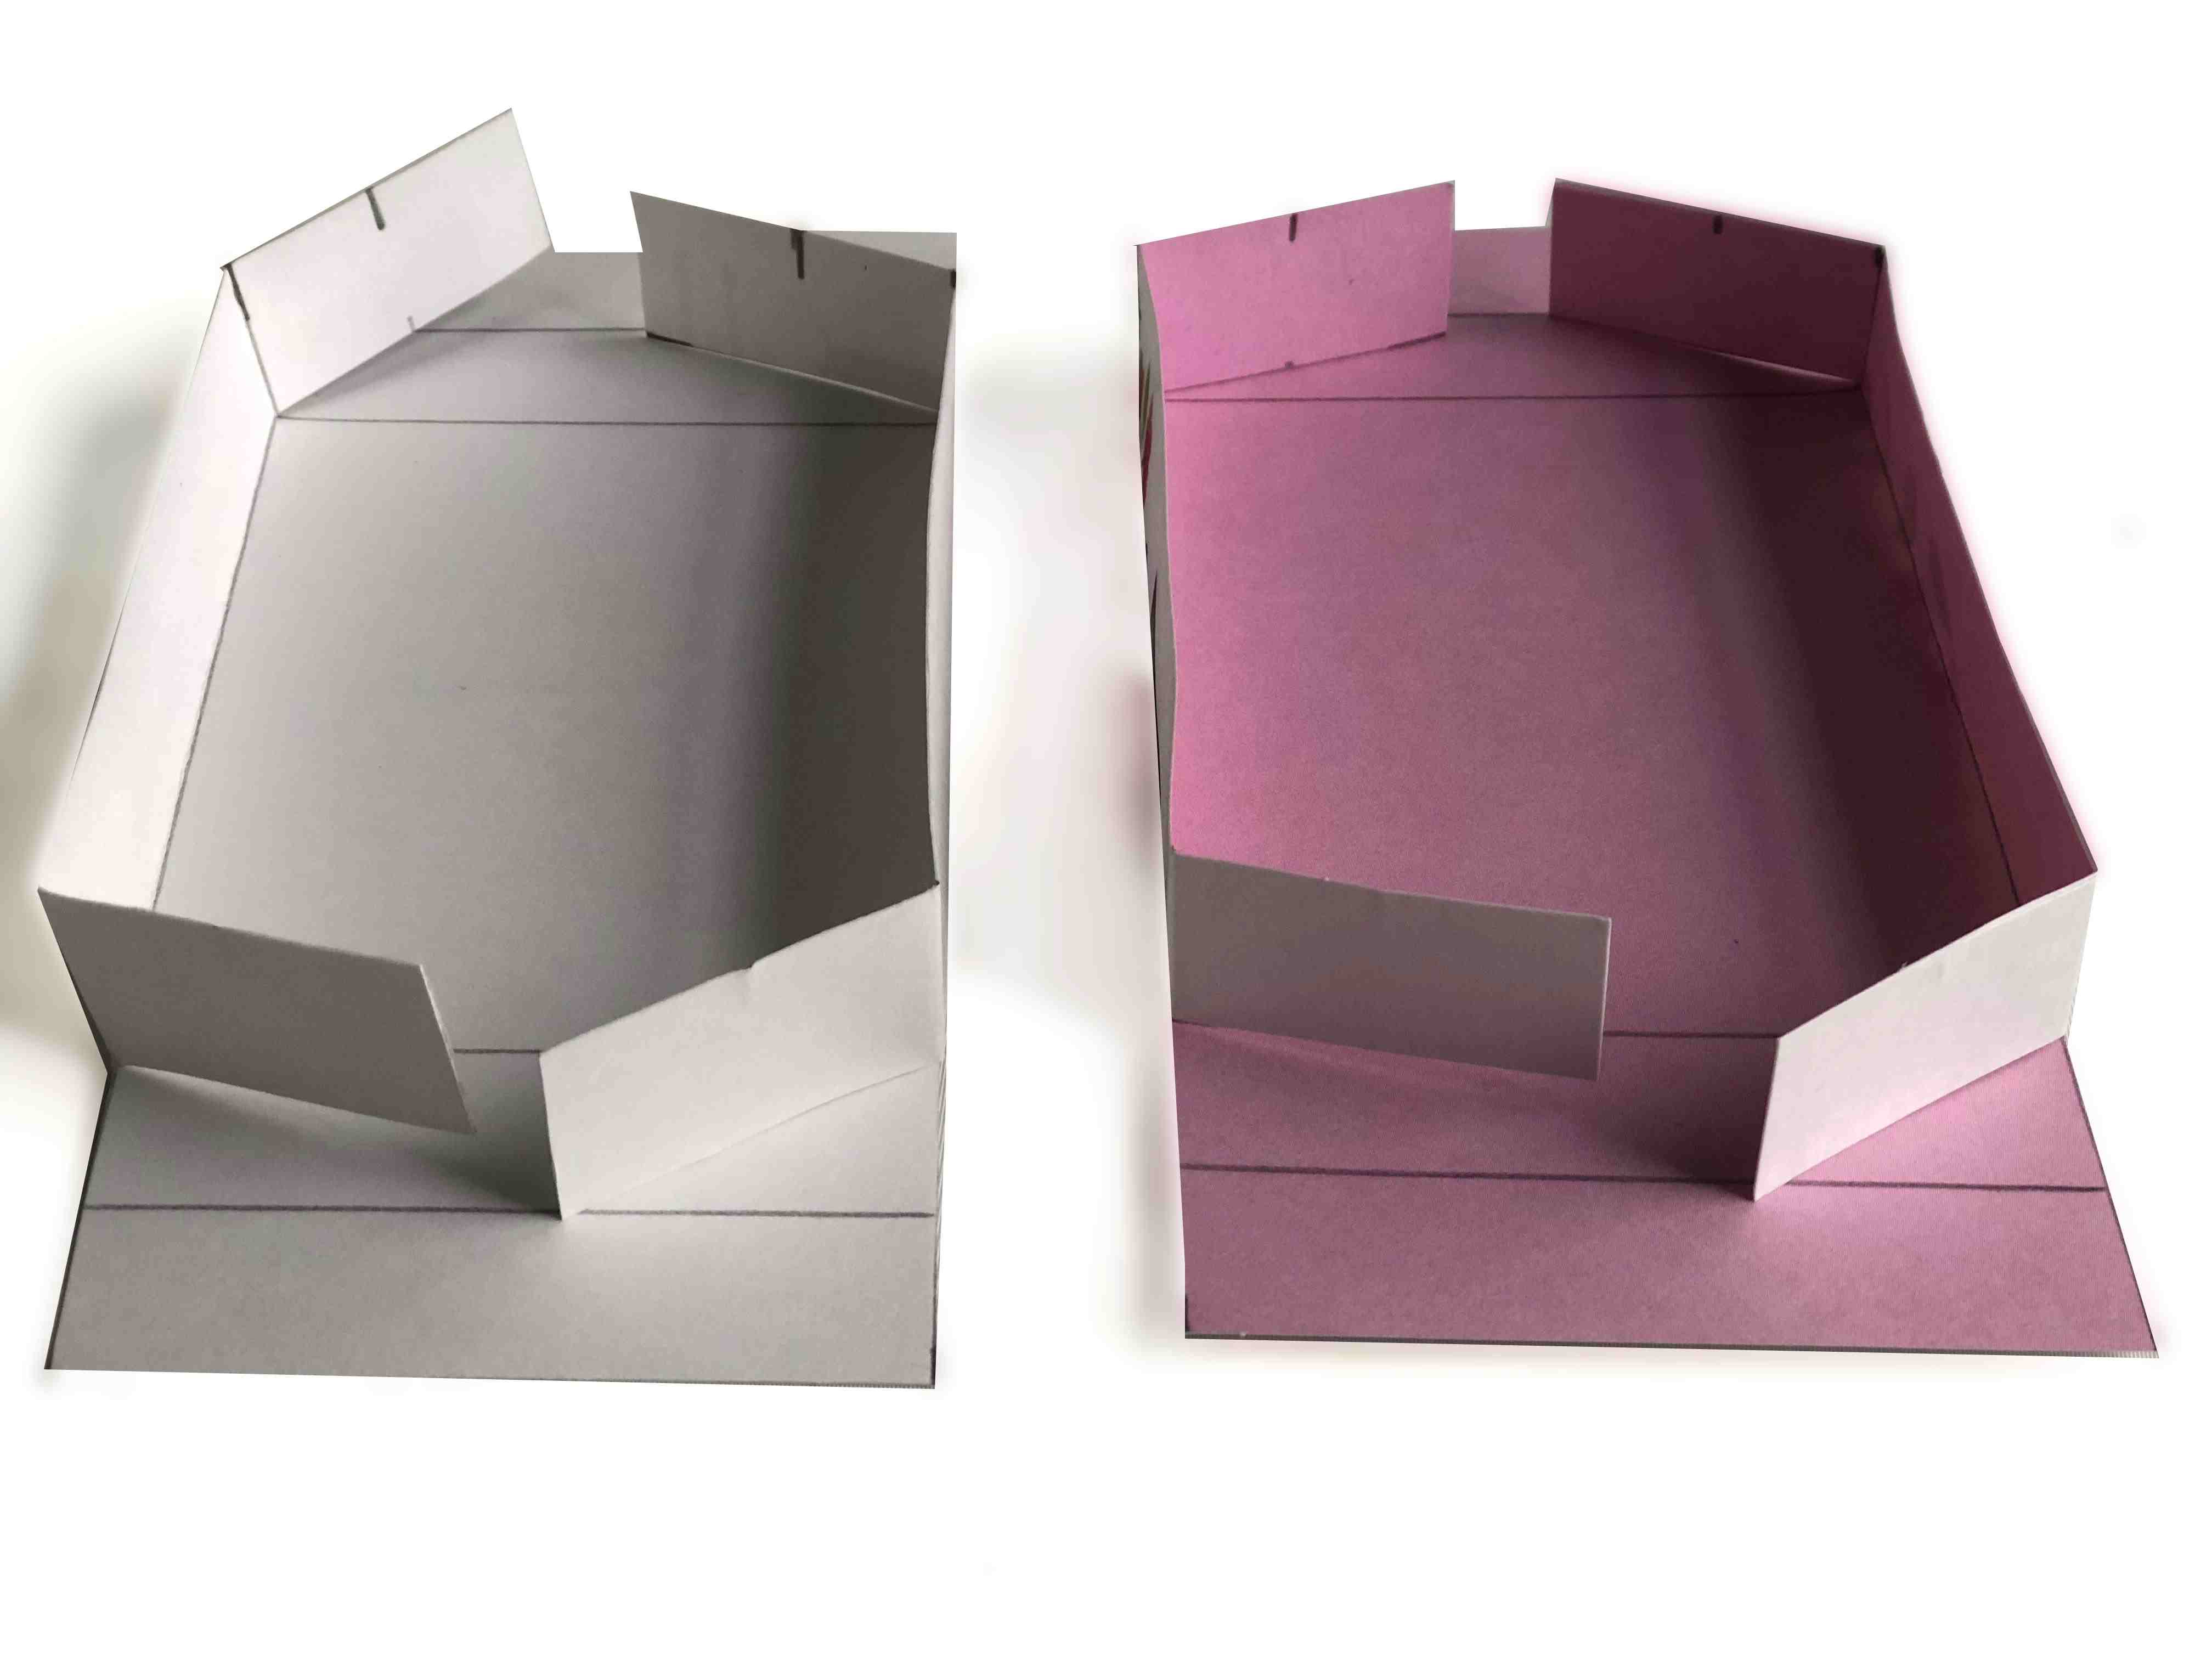 folding the sides of the greeting card box